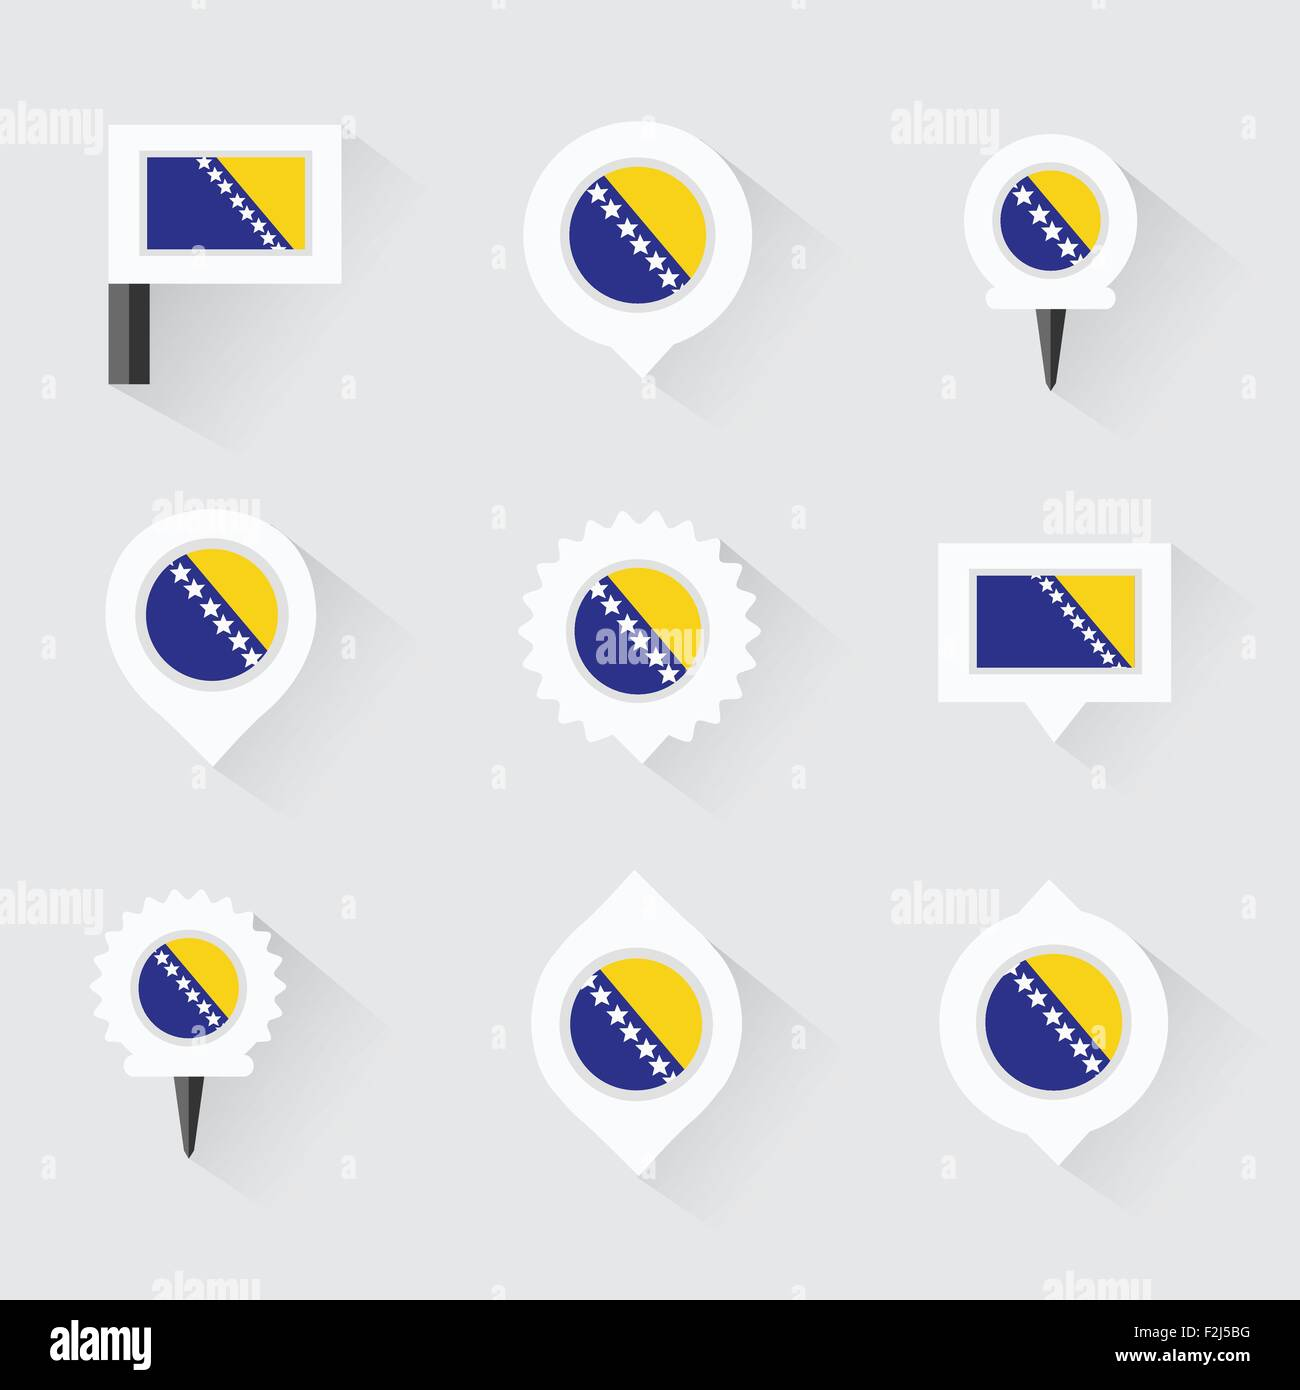 bosnia and herzegovina flag and pins for infographic, and map design - Stock Vector